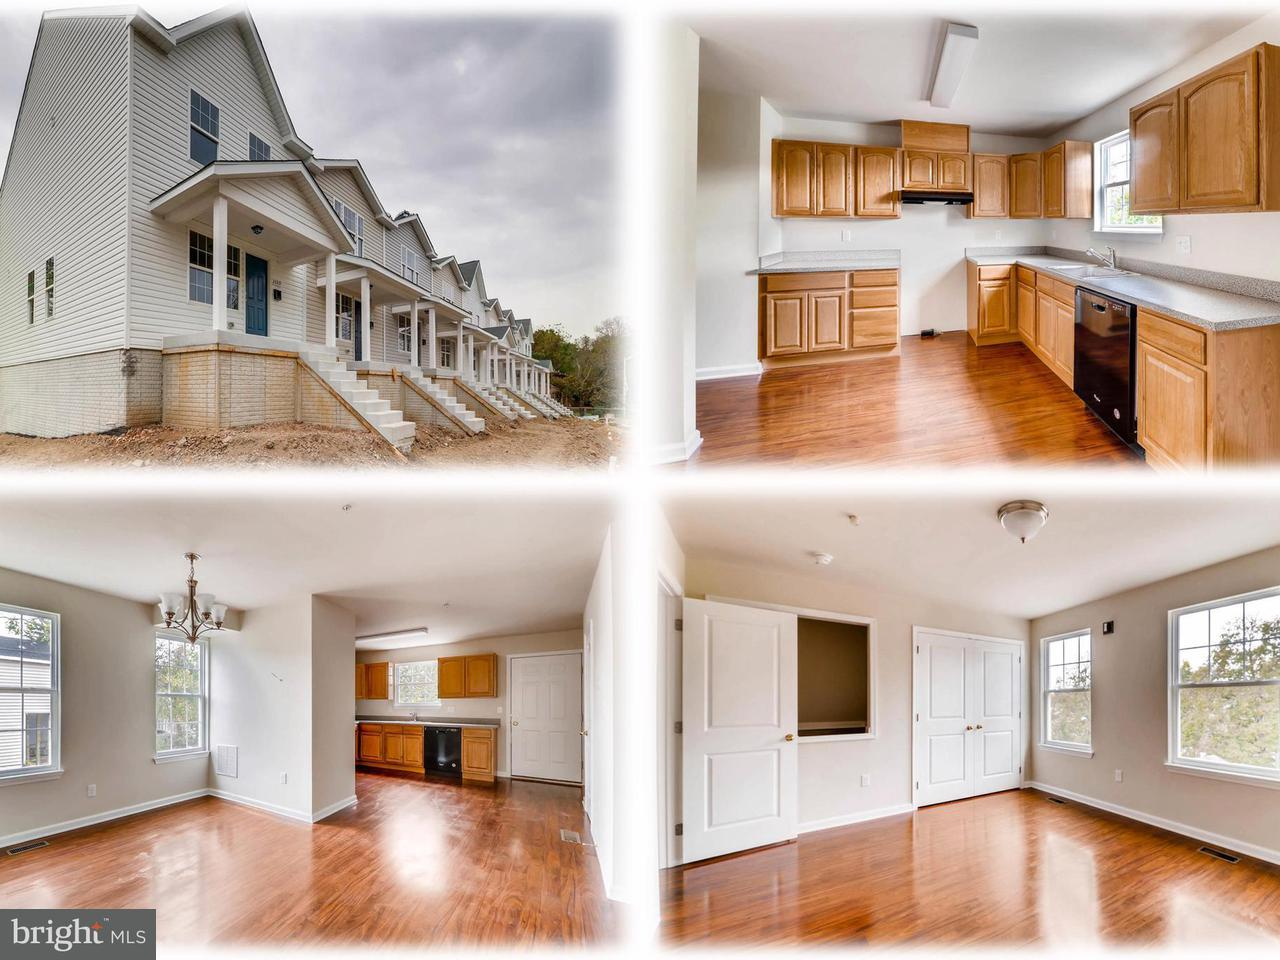 Single Family for Sale at 2621 Huron St Baltimore, Maryland 21230 United States